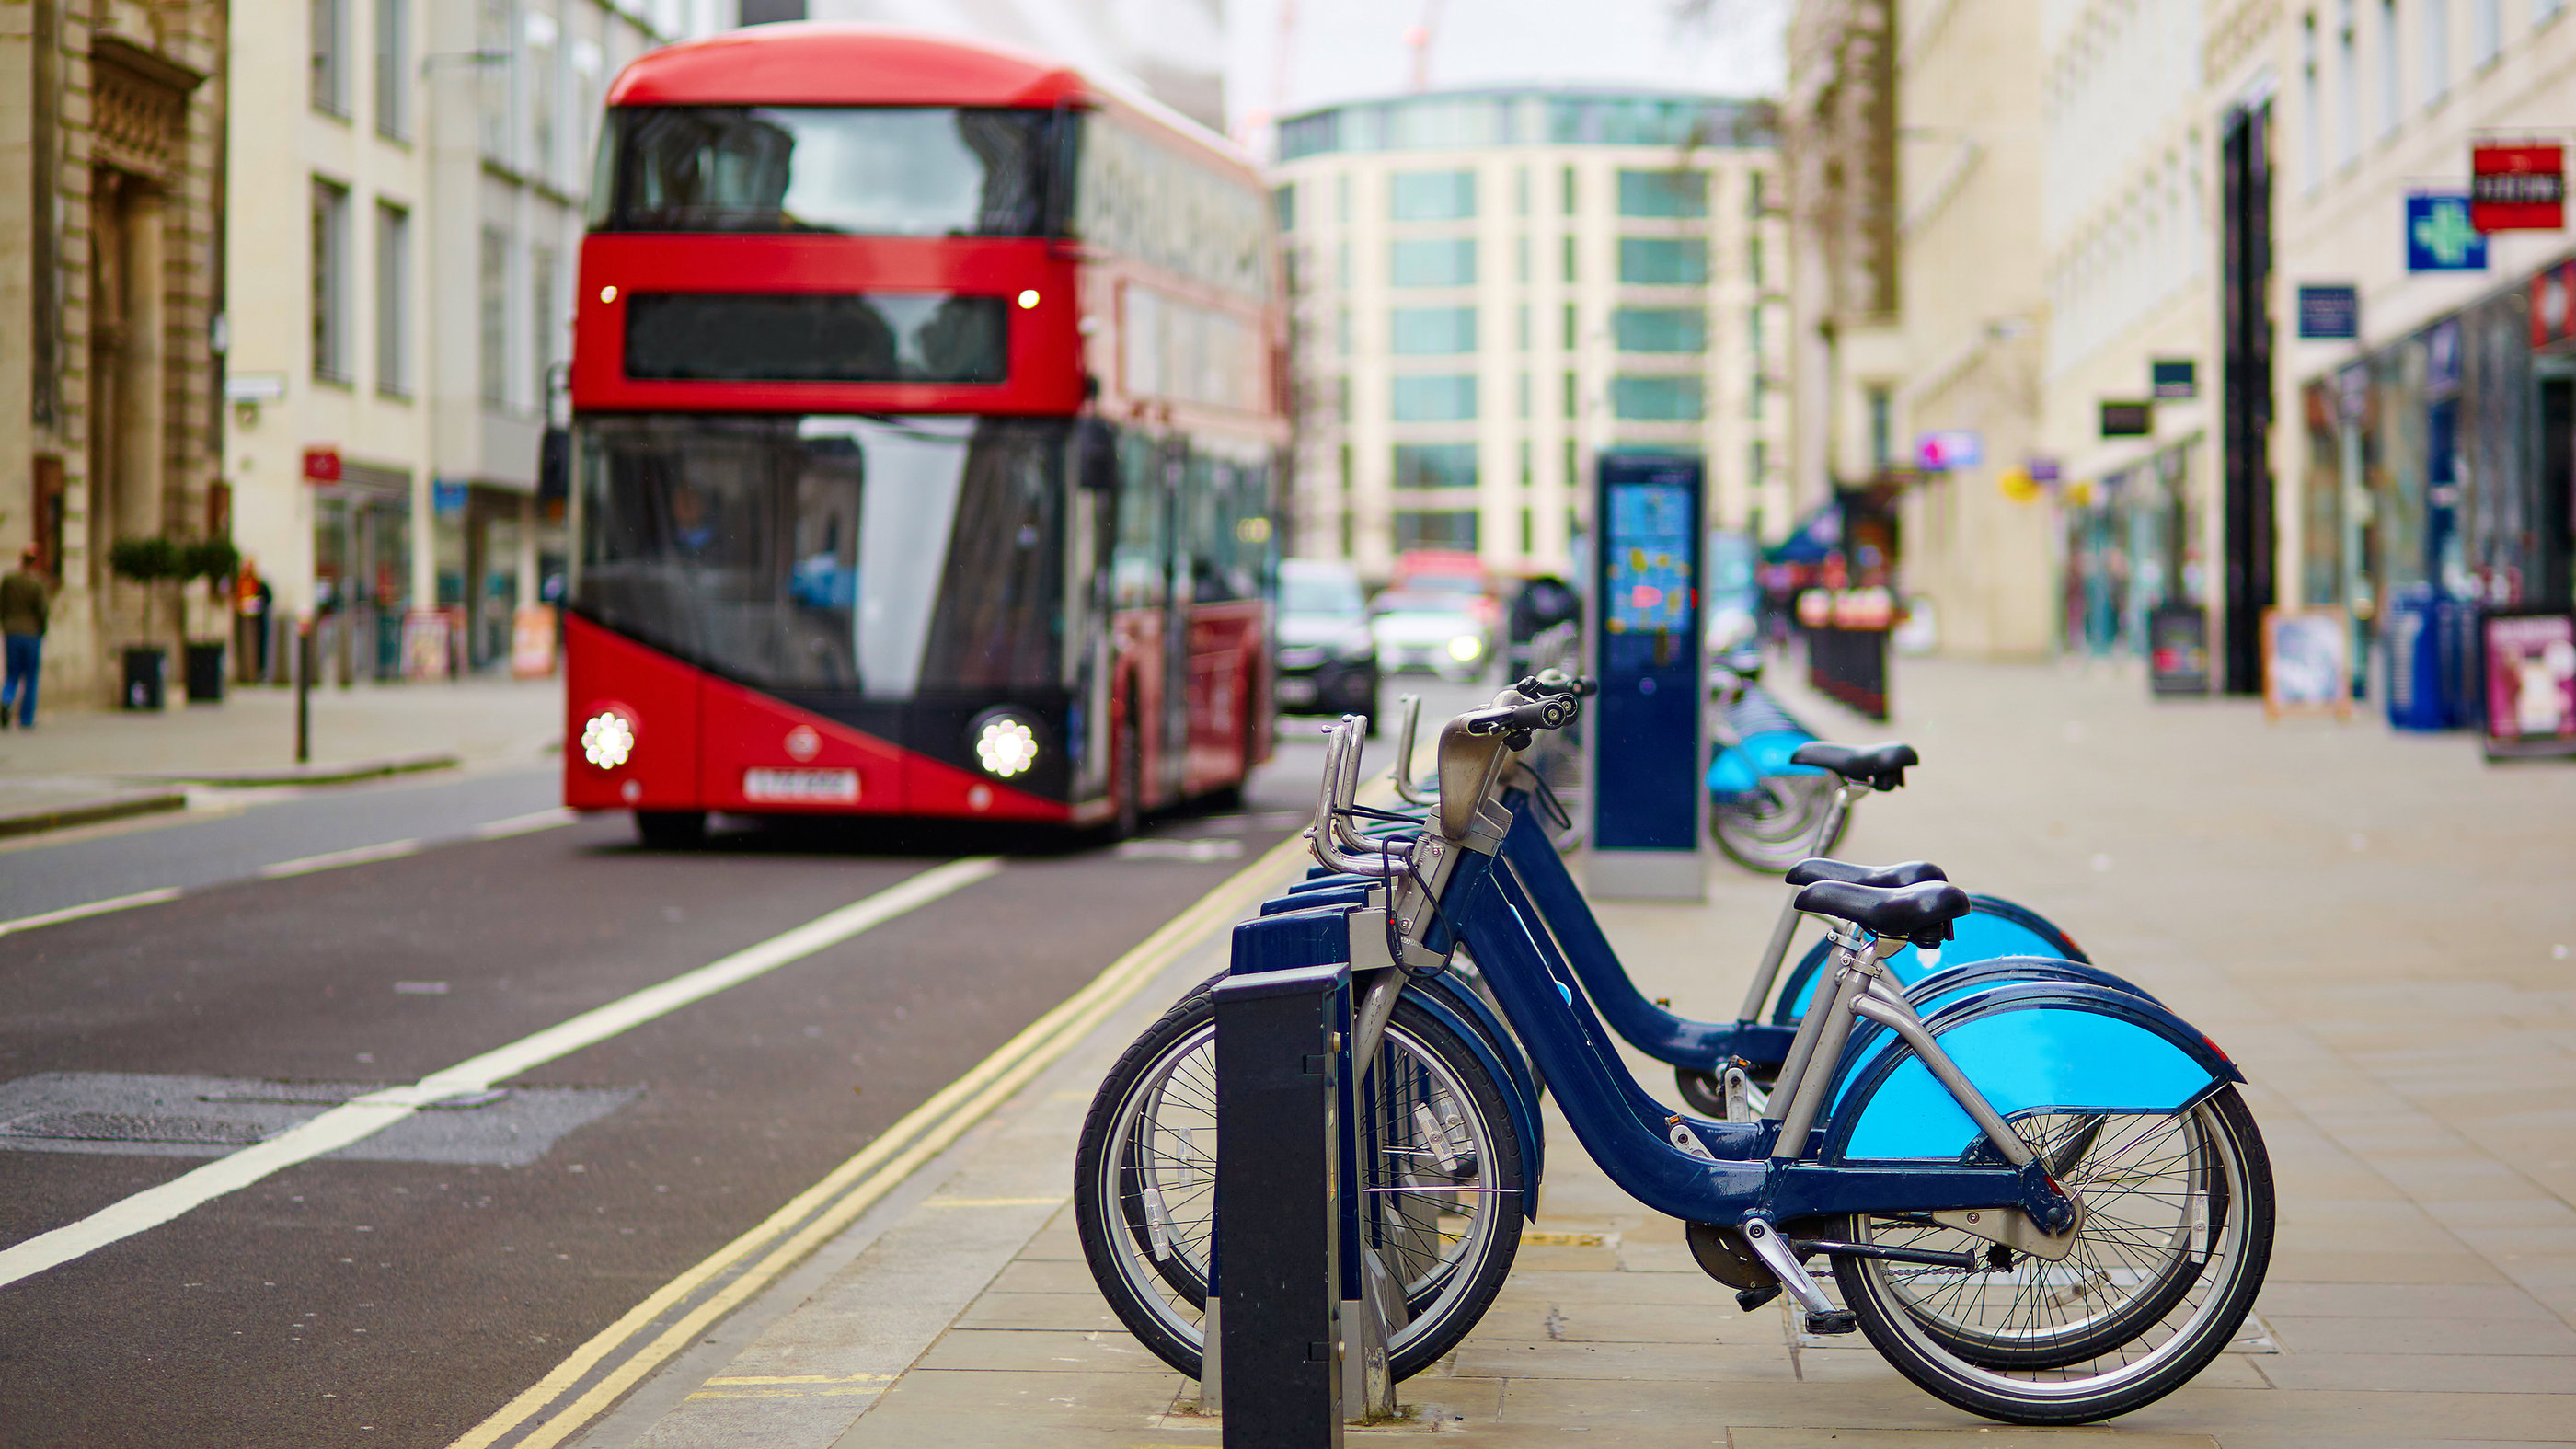 Row of bicycles for rent with red double-decker bus in the background on a street of London, UK